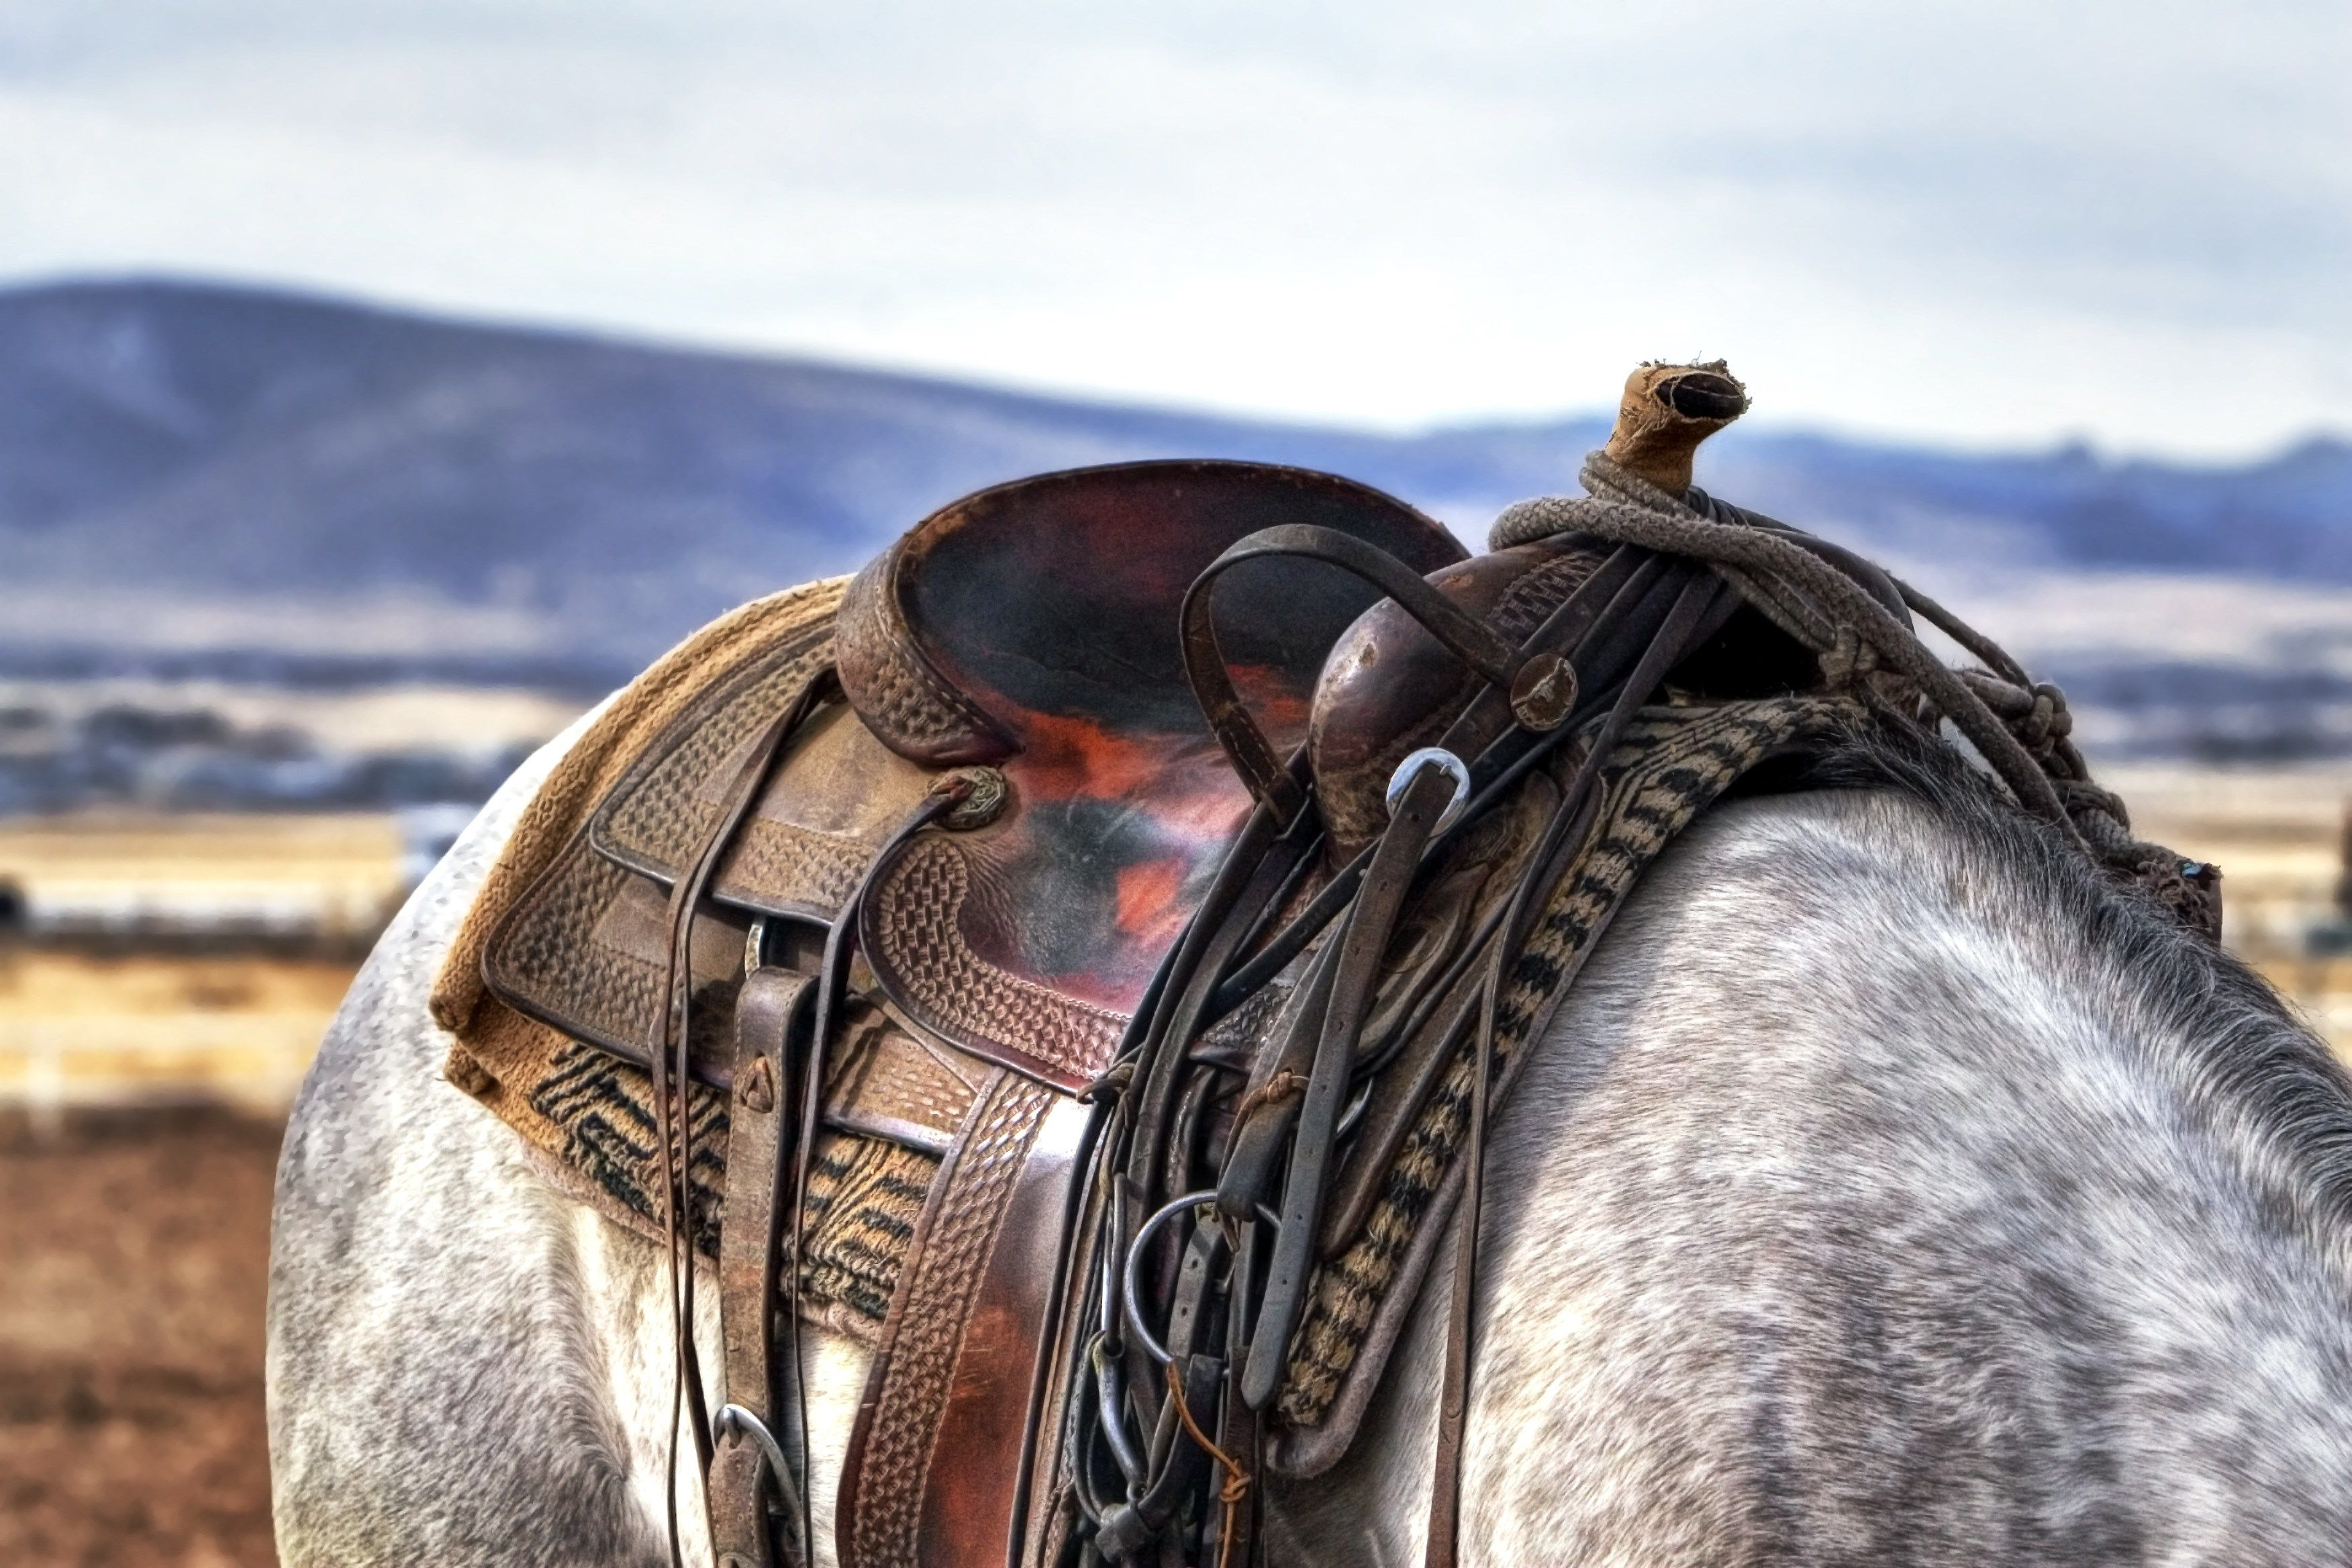 Horse Riding Hd Wallpapers Desktop Background Western Saddle 2106659 Hd Wallpaper Backgrounds Download